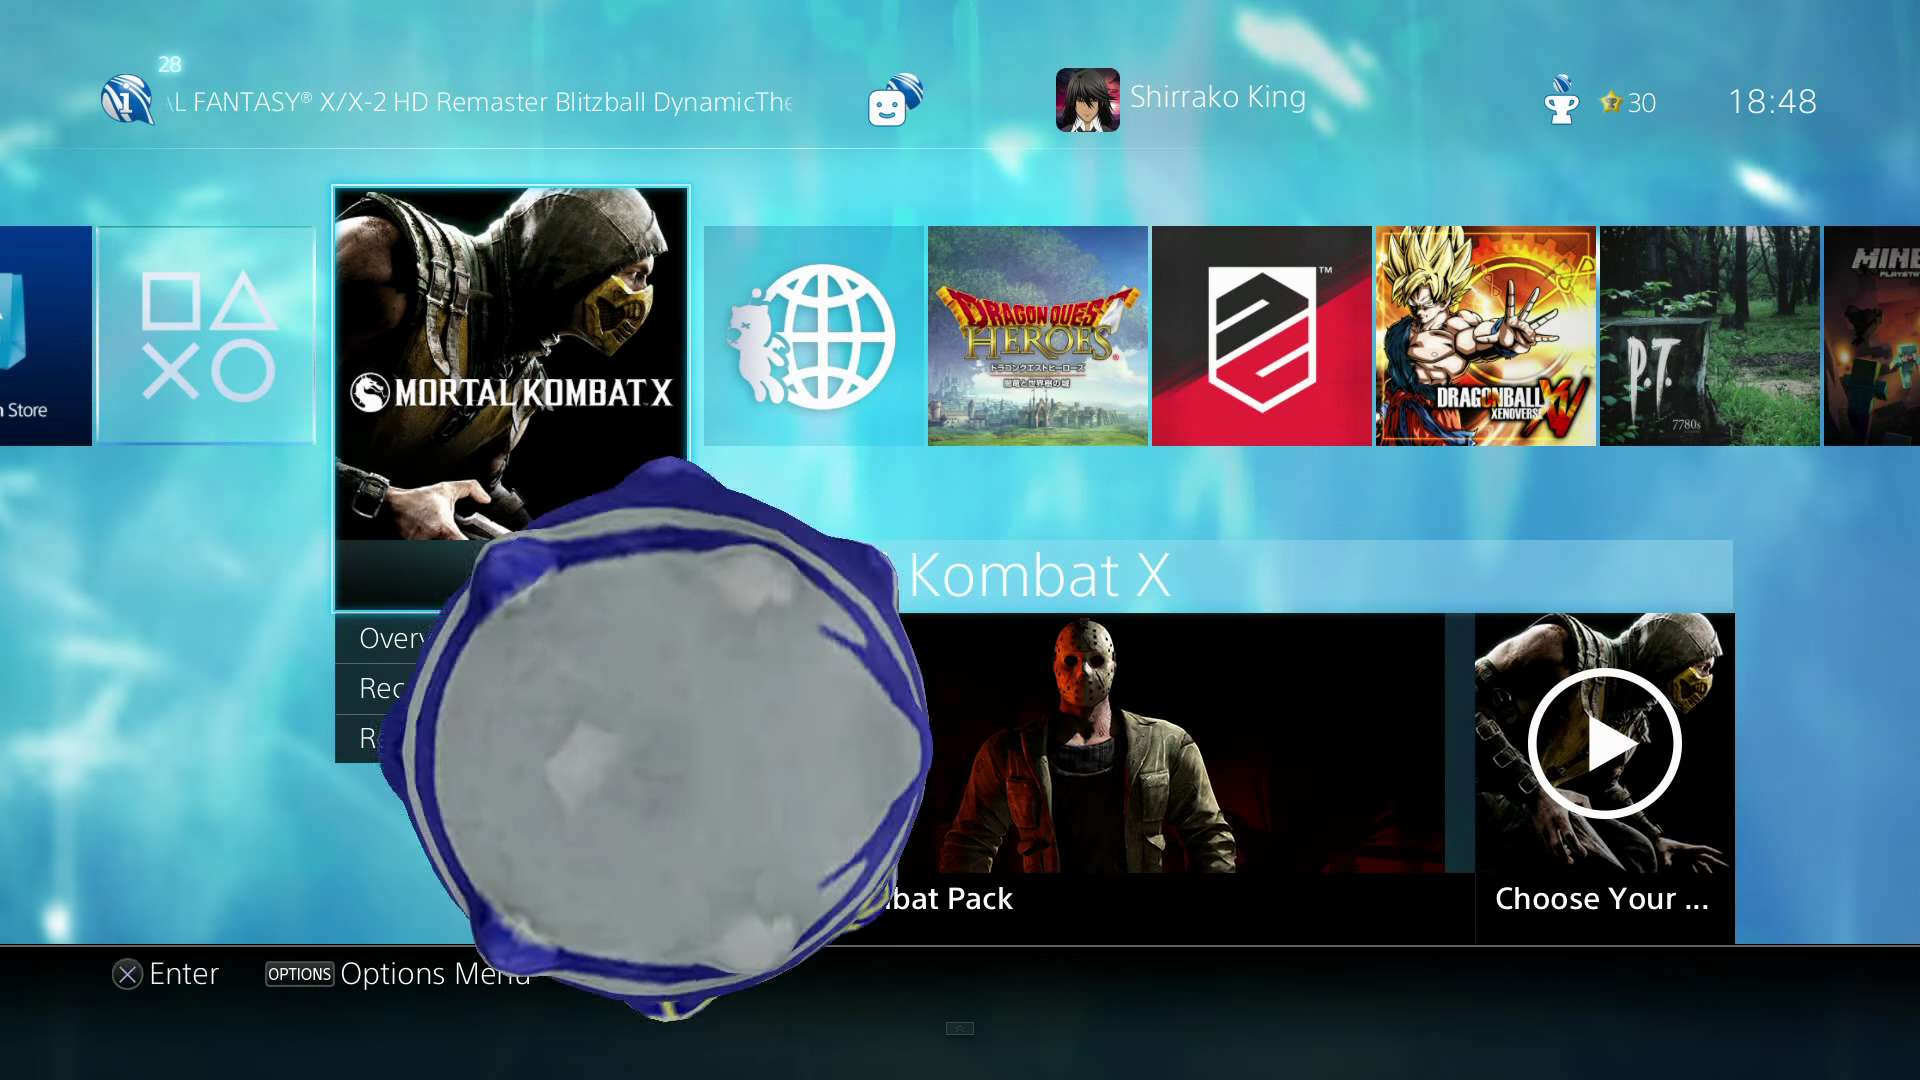 PS4 Dynamic Theme For Final Fantasy X X 2 HD Is Actually